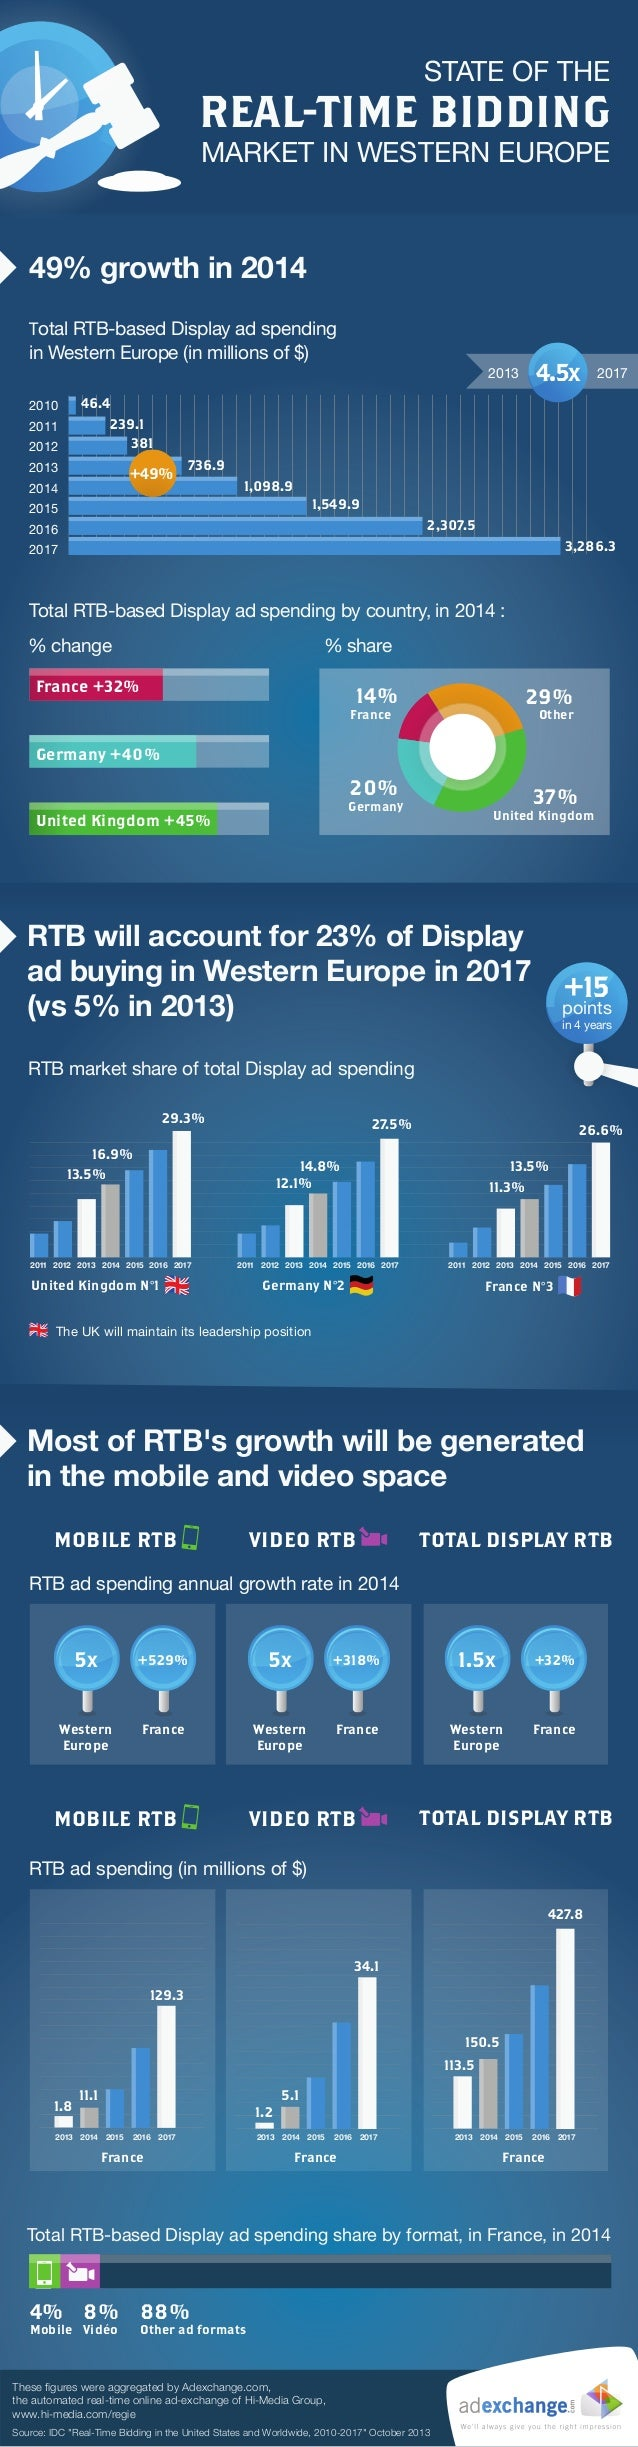 STATE OF THE  REAL-TIME BIDDING  MARKET IN WESTERN EUROPE  49% growth in 2014 Total RTB-based Display ad spending in Weste...